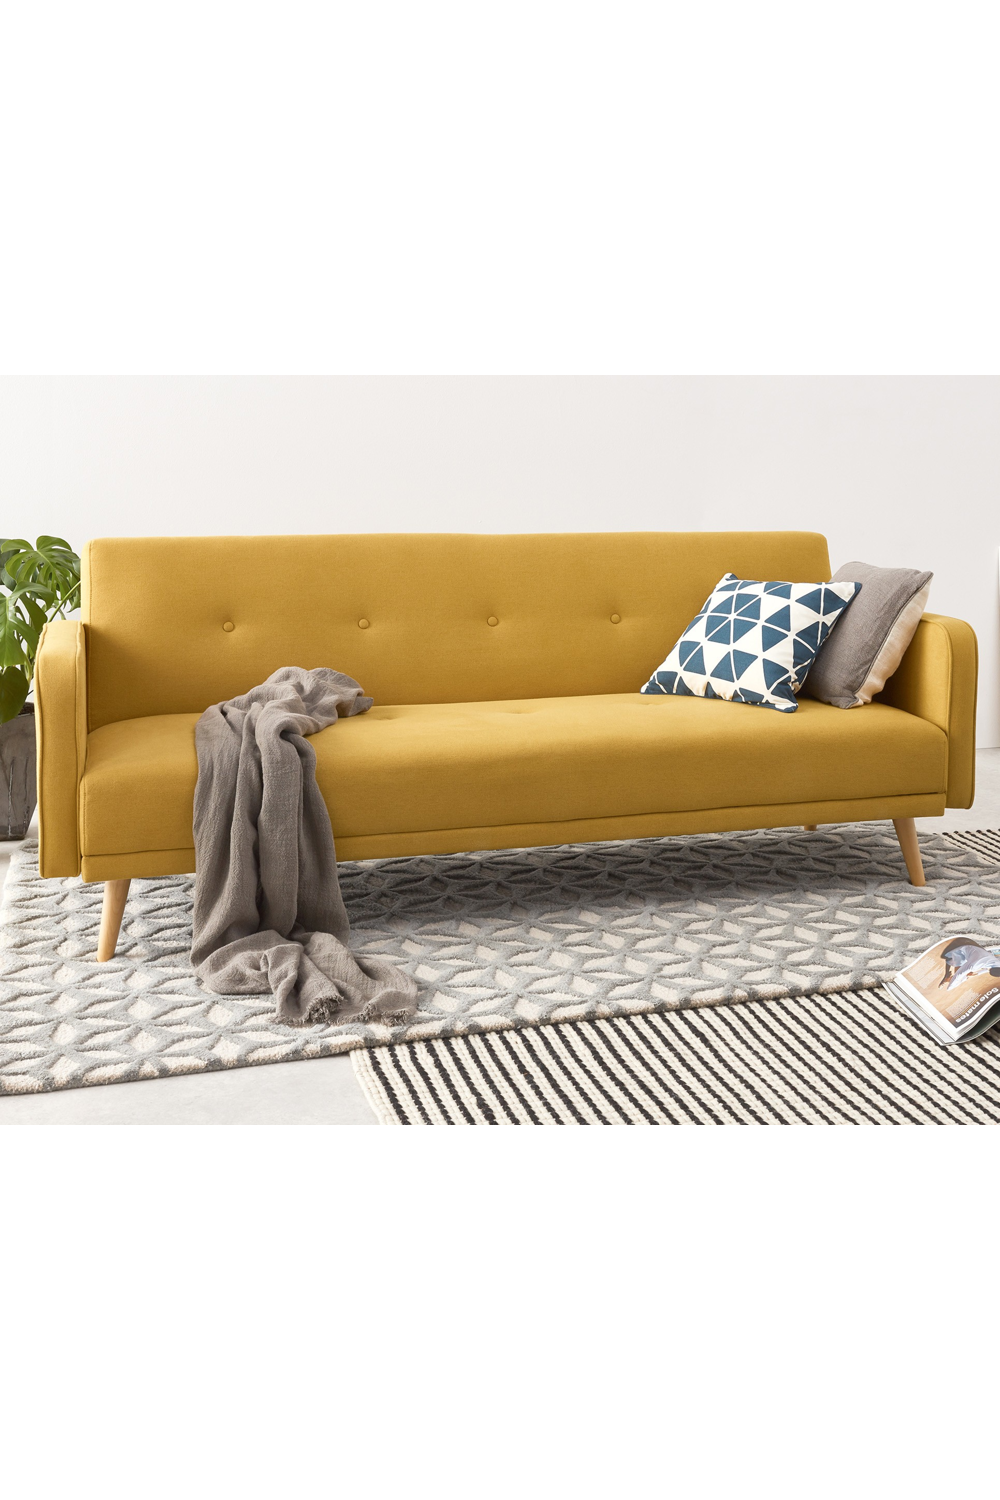 Chou Schlafsofa Buttergelb Yellow Sofa Sofa Sofa Bed